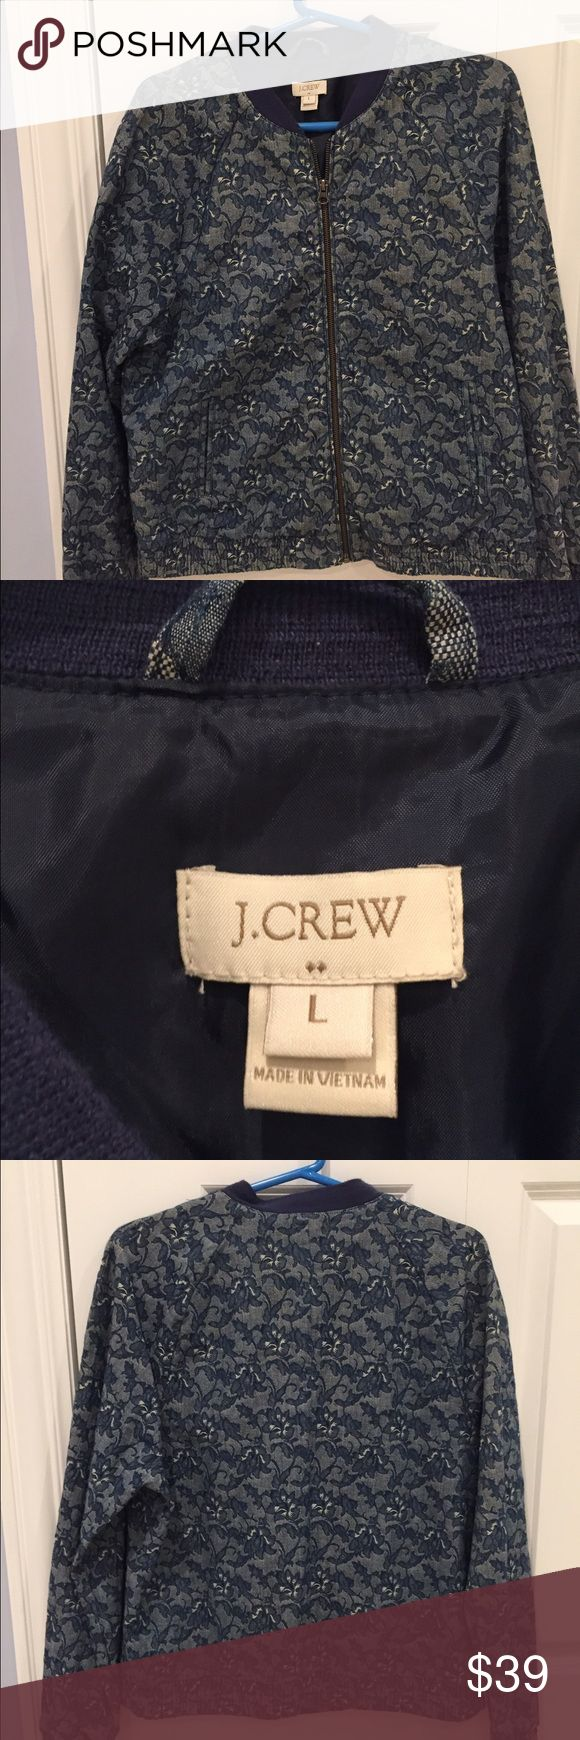 J Crew Bomber Style Jacket Navy embroidery on lightweight denim. Elastic at waist and wrists.  Size L.  Excellent condition and on trend for Spring! J Crew Jackets & Coats Jean Jackets